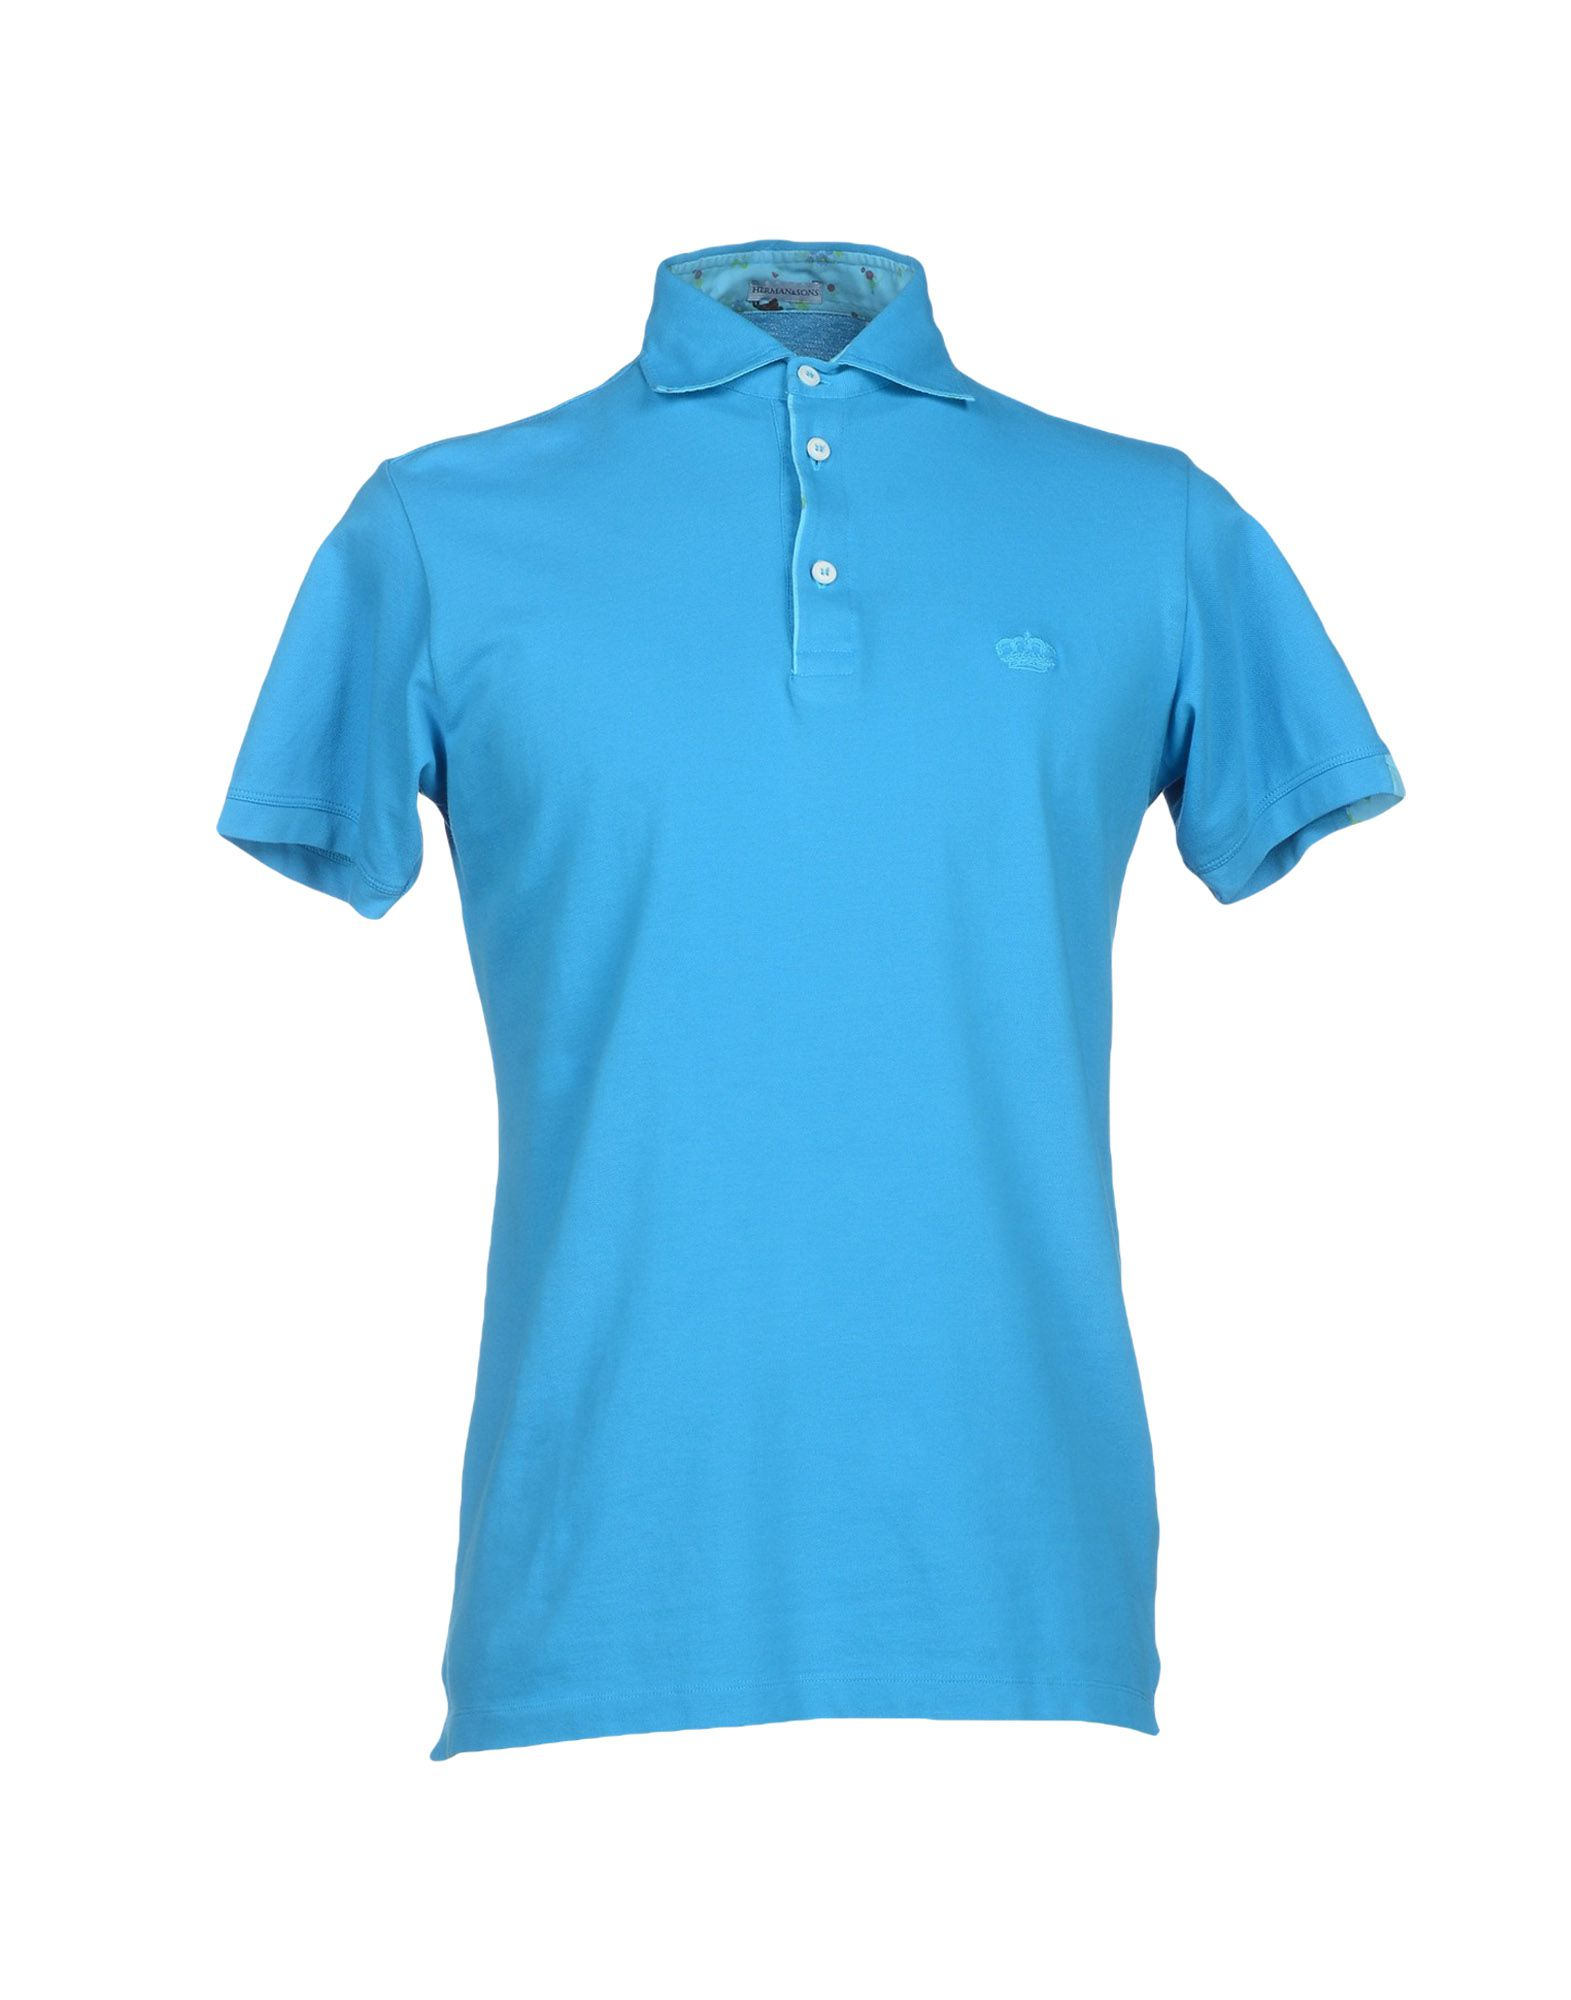 T-shirt design kit free download - Herman Sons Polo Shirt Men Herman Sons Polo Shirts Online On Yoox Lithuania 37835841lo